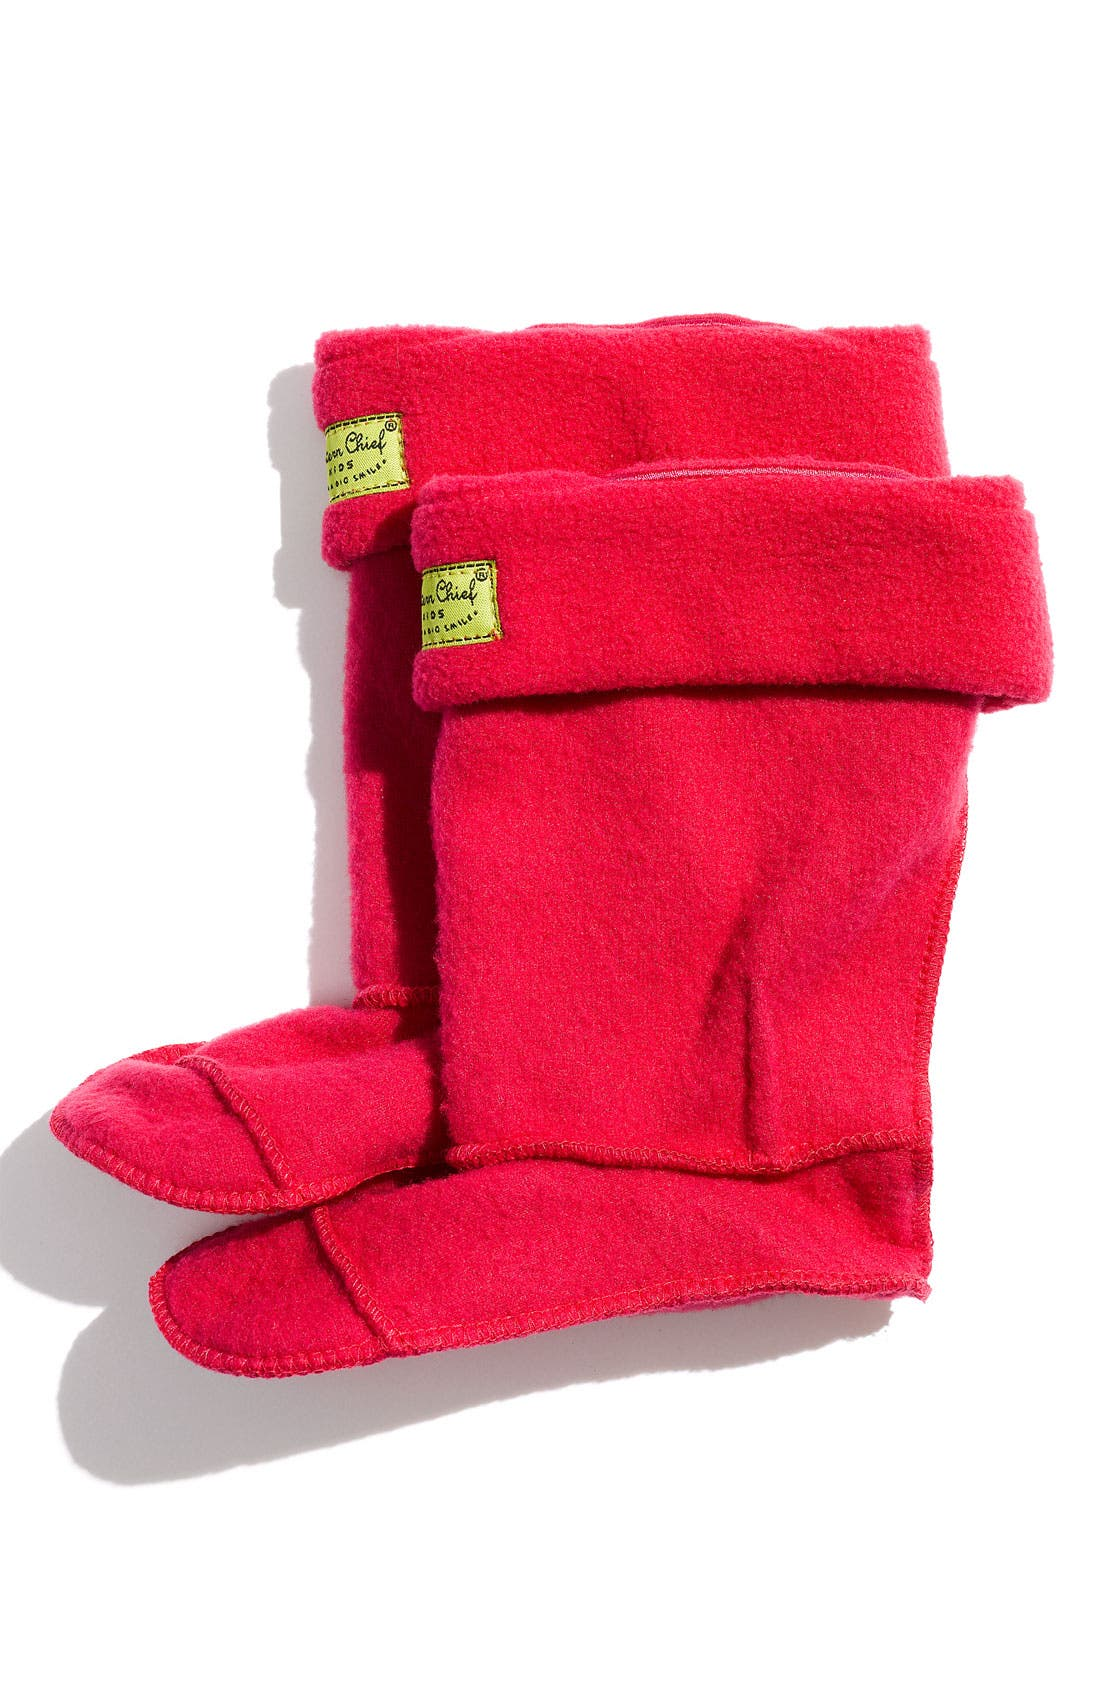 Main Image - Western Chief Fleece Boot Socks (Walker, Toddler & Little Kid)